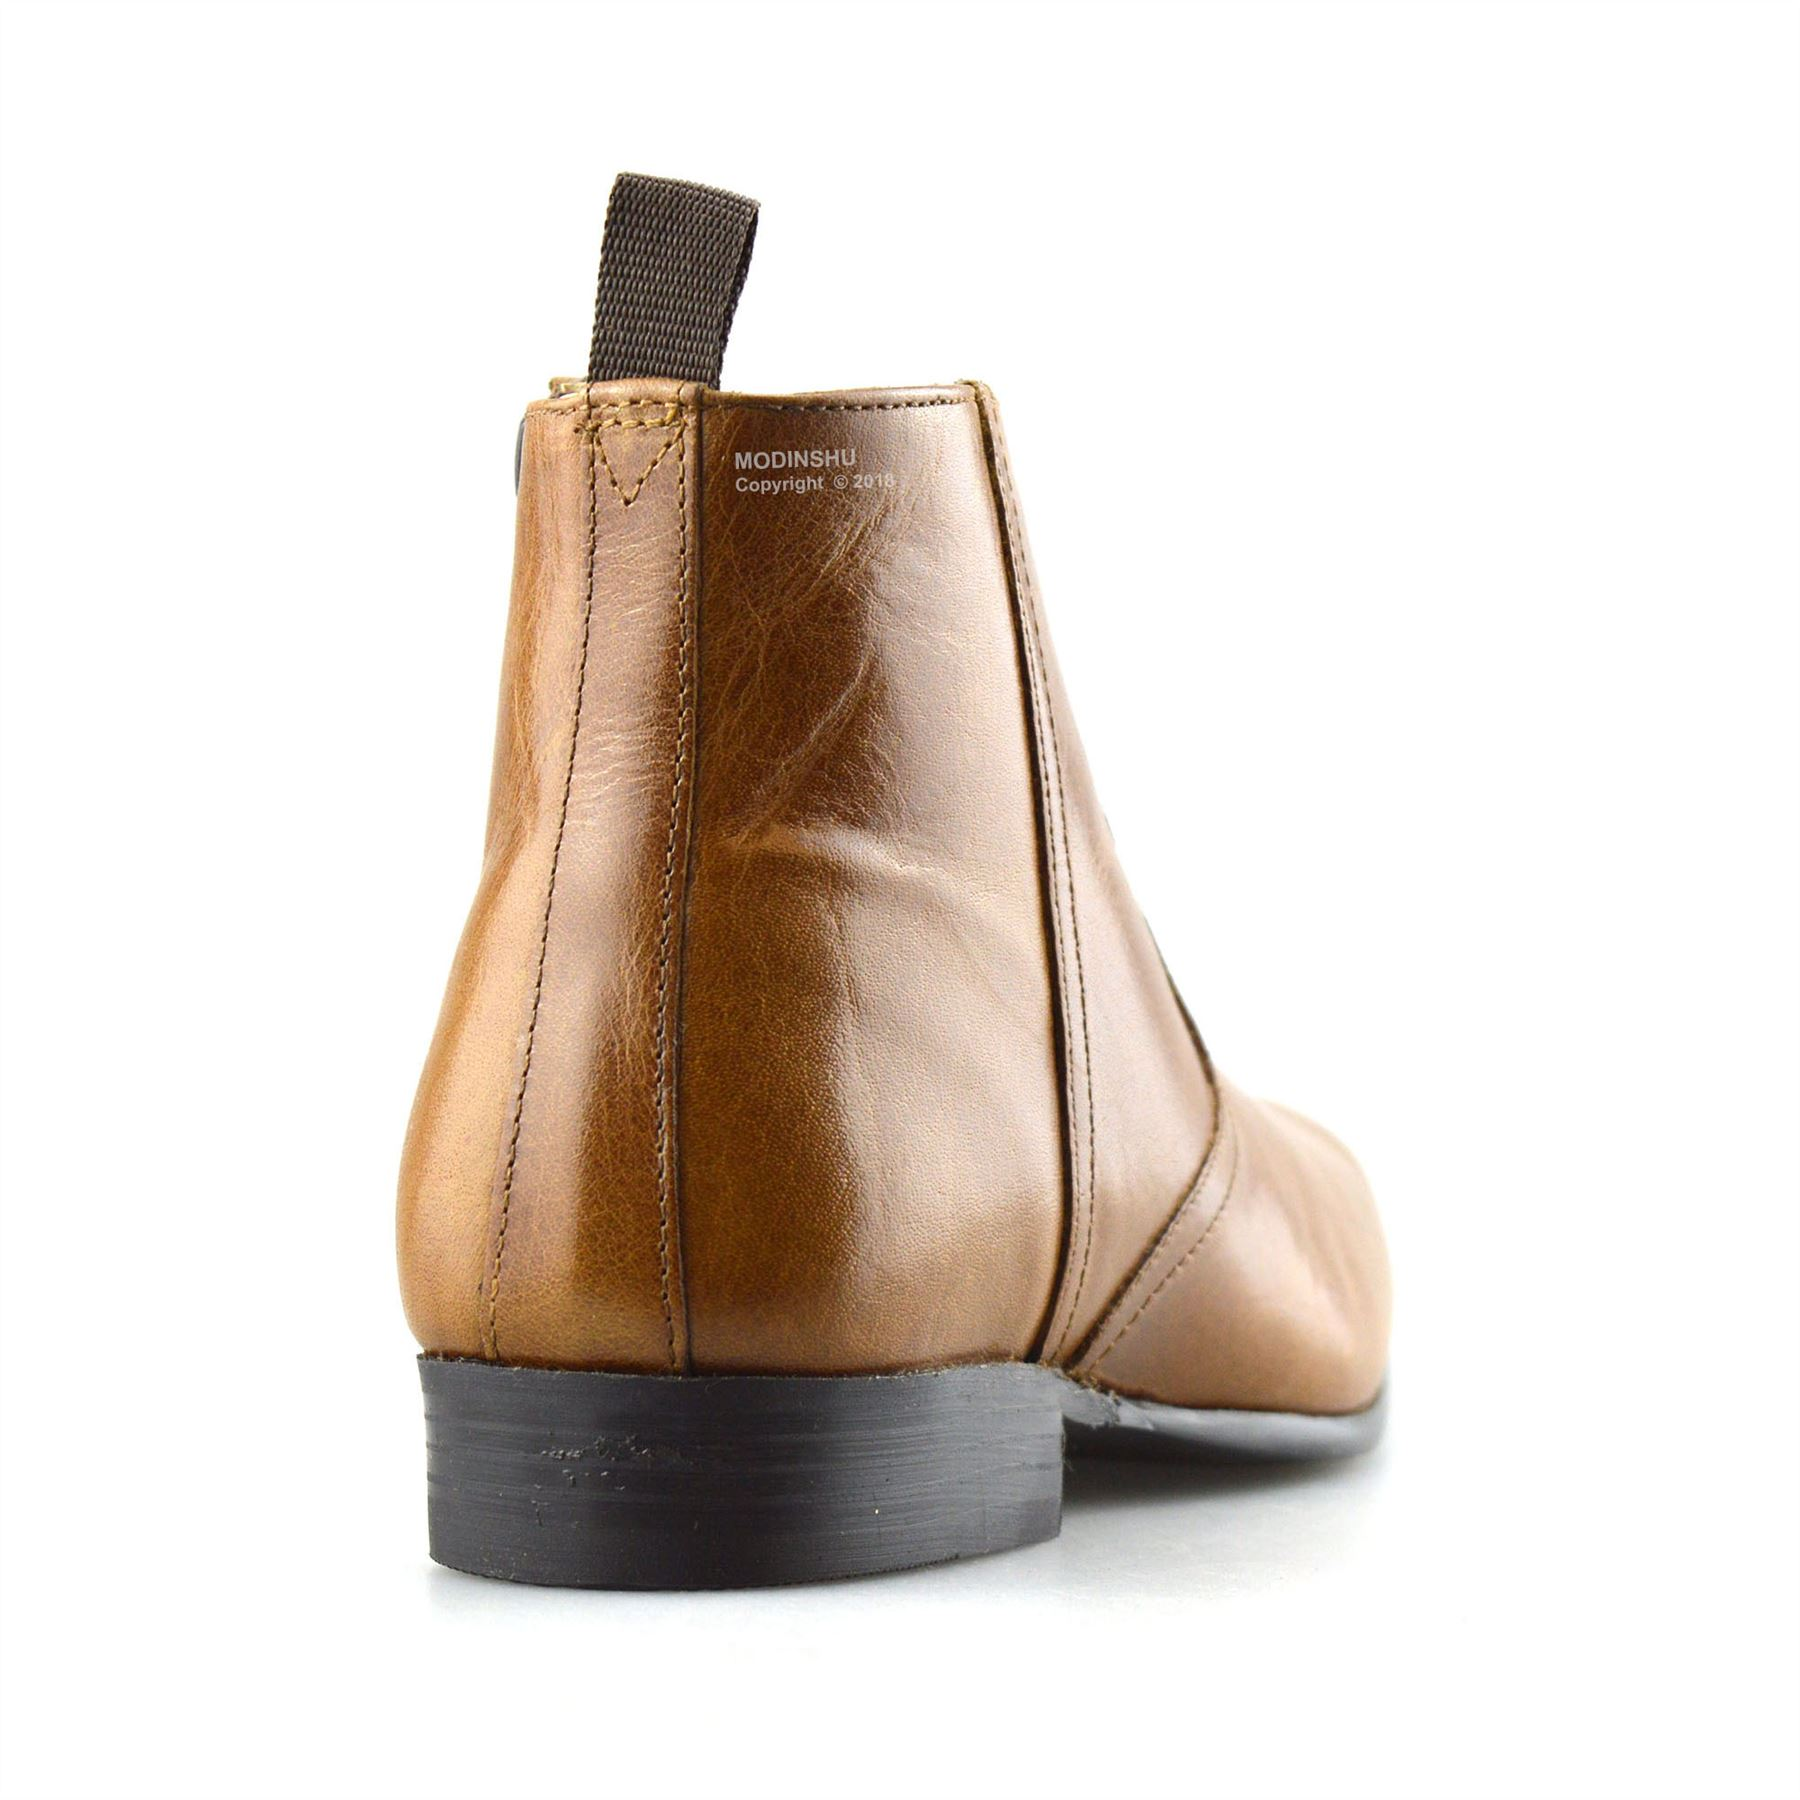 Mens-New-Leather-Zip-Up-Smart-Formal-Chelsea-Dealer-Work-Ankle-Boots-Shoes-Size thumbnail 24